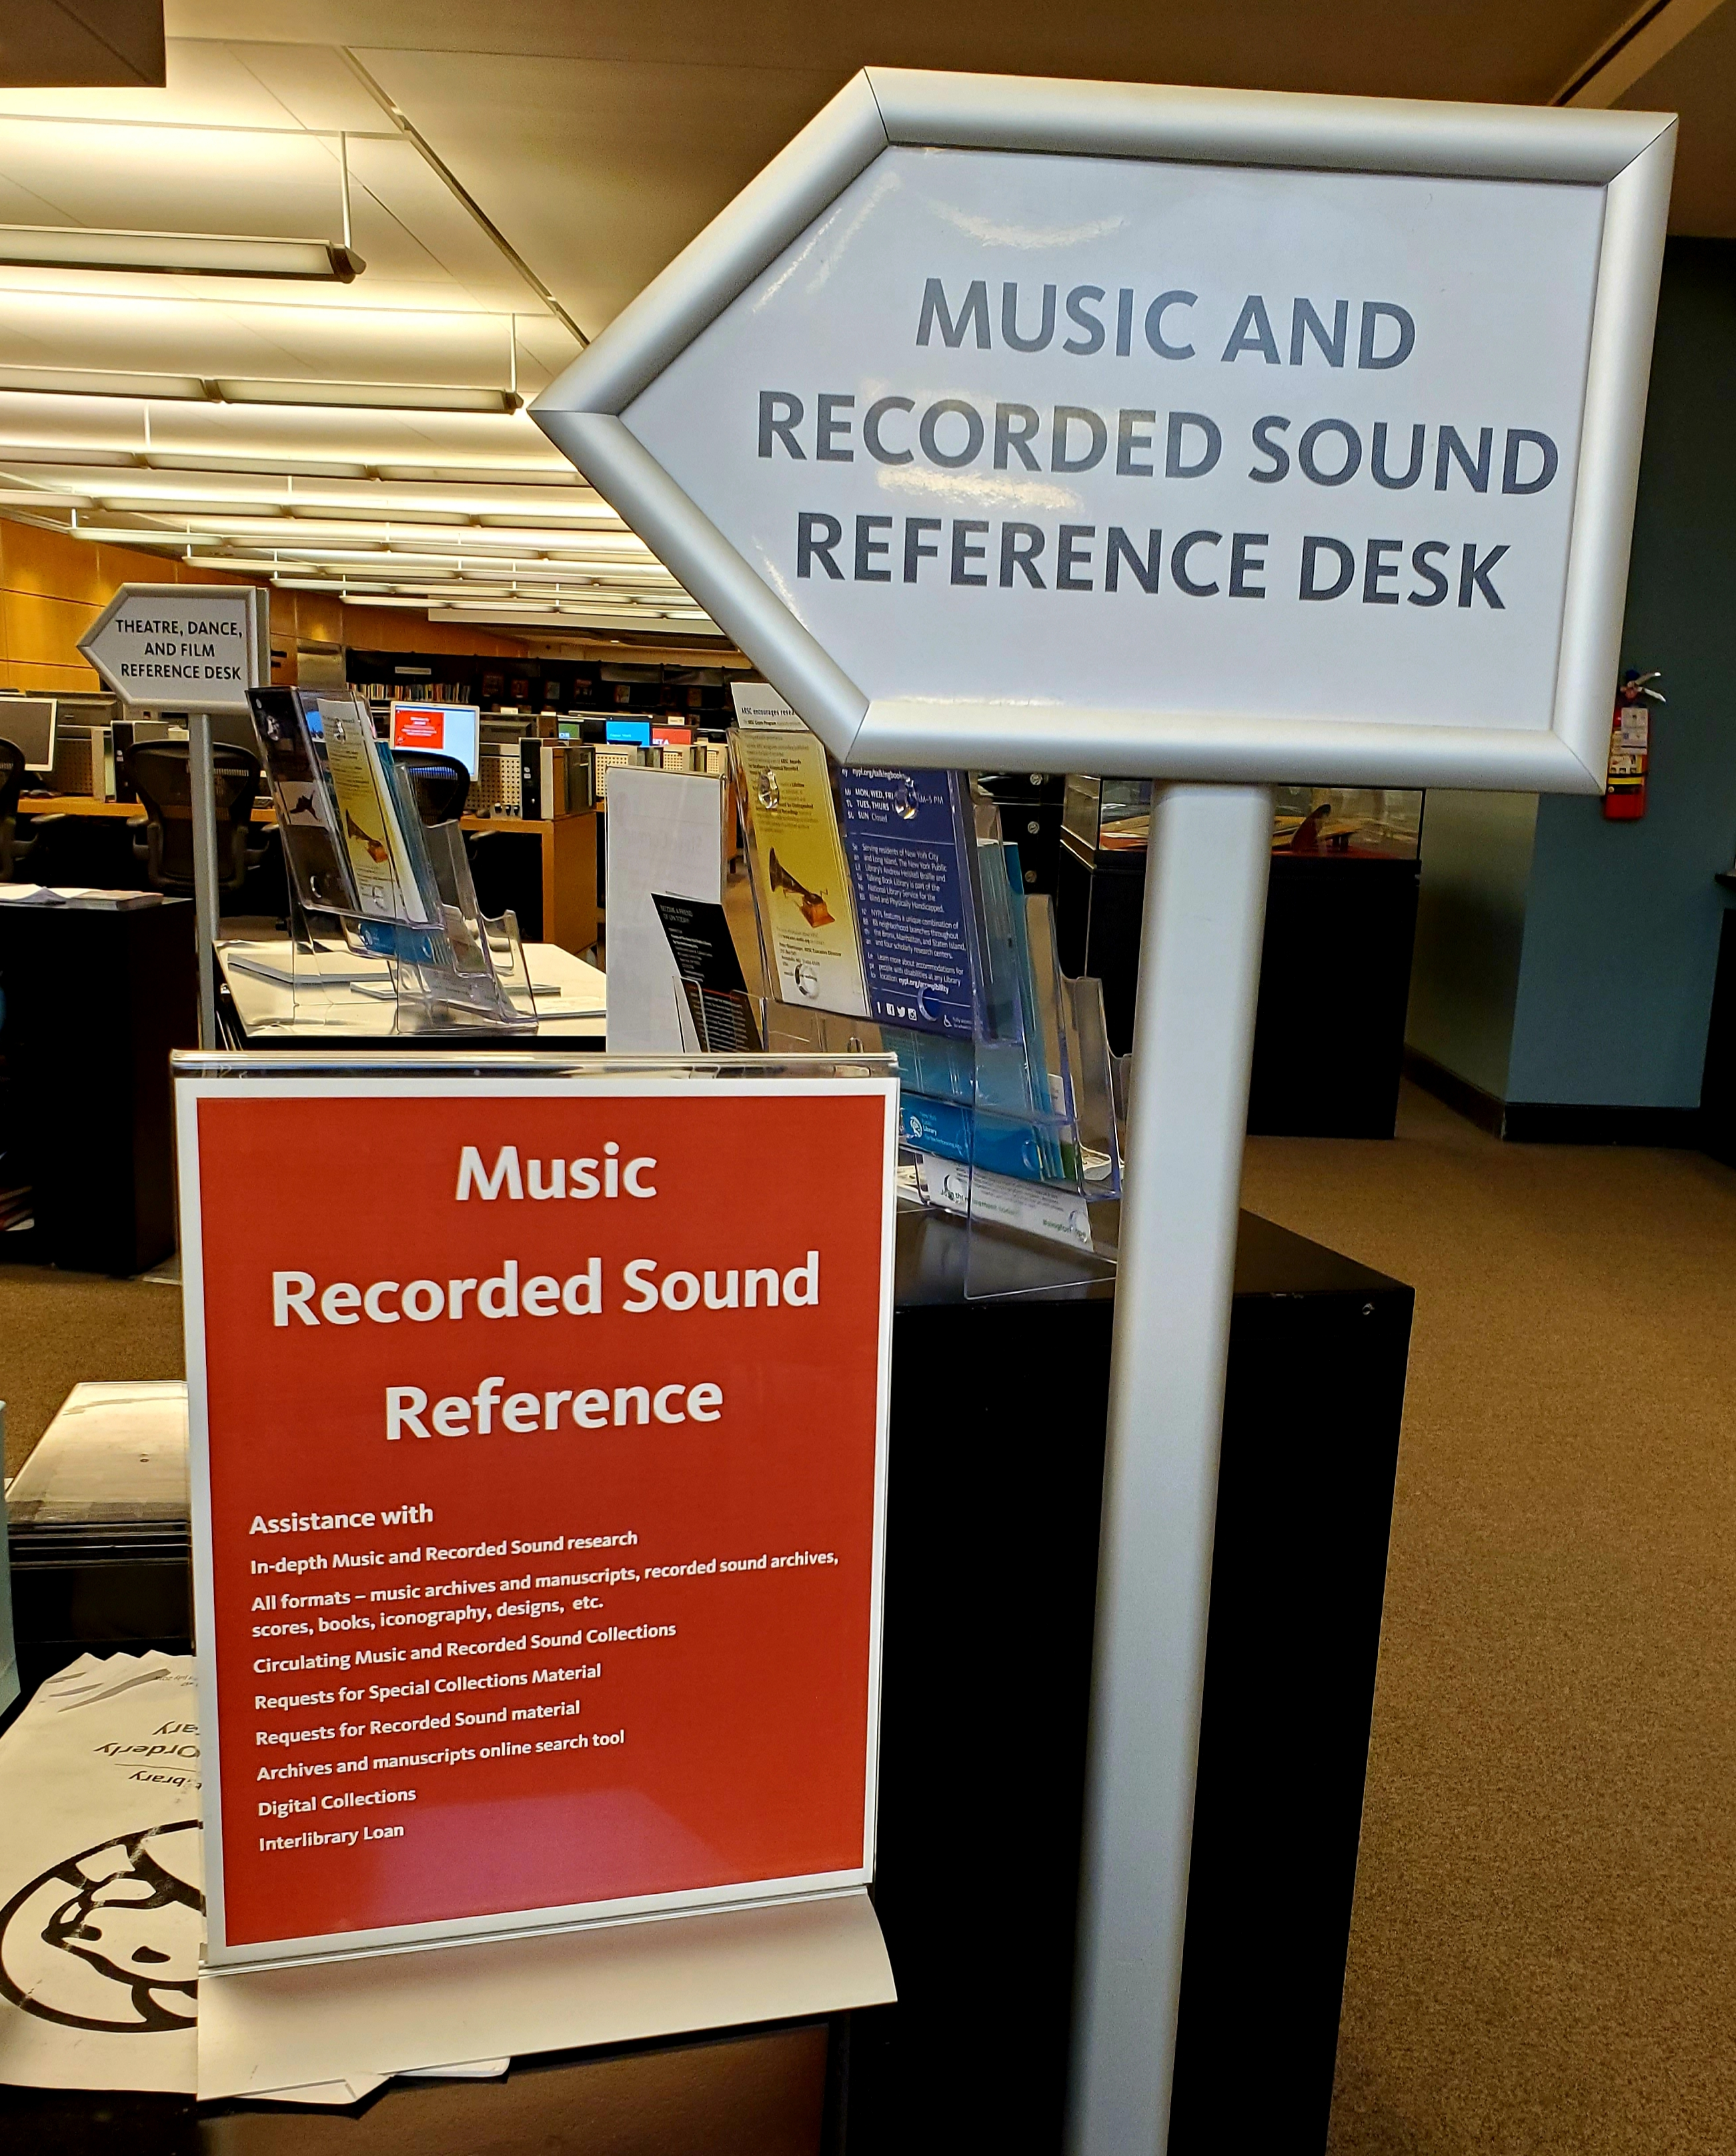 Music & Recorded Sound Reference Signage